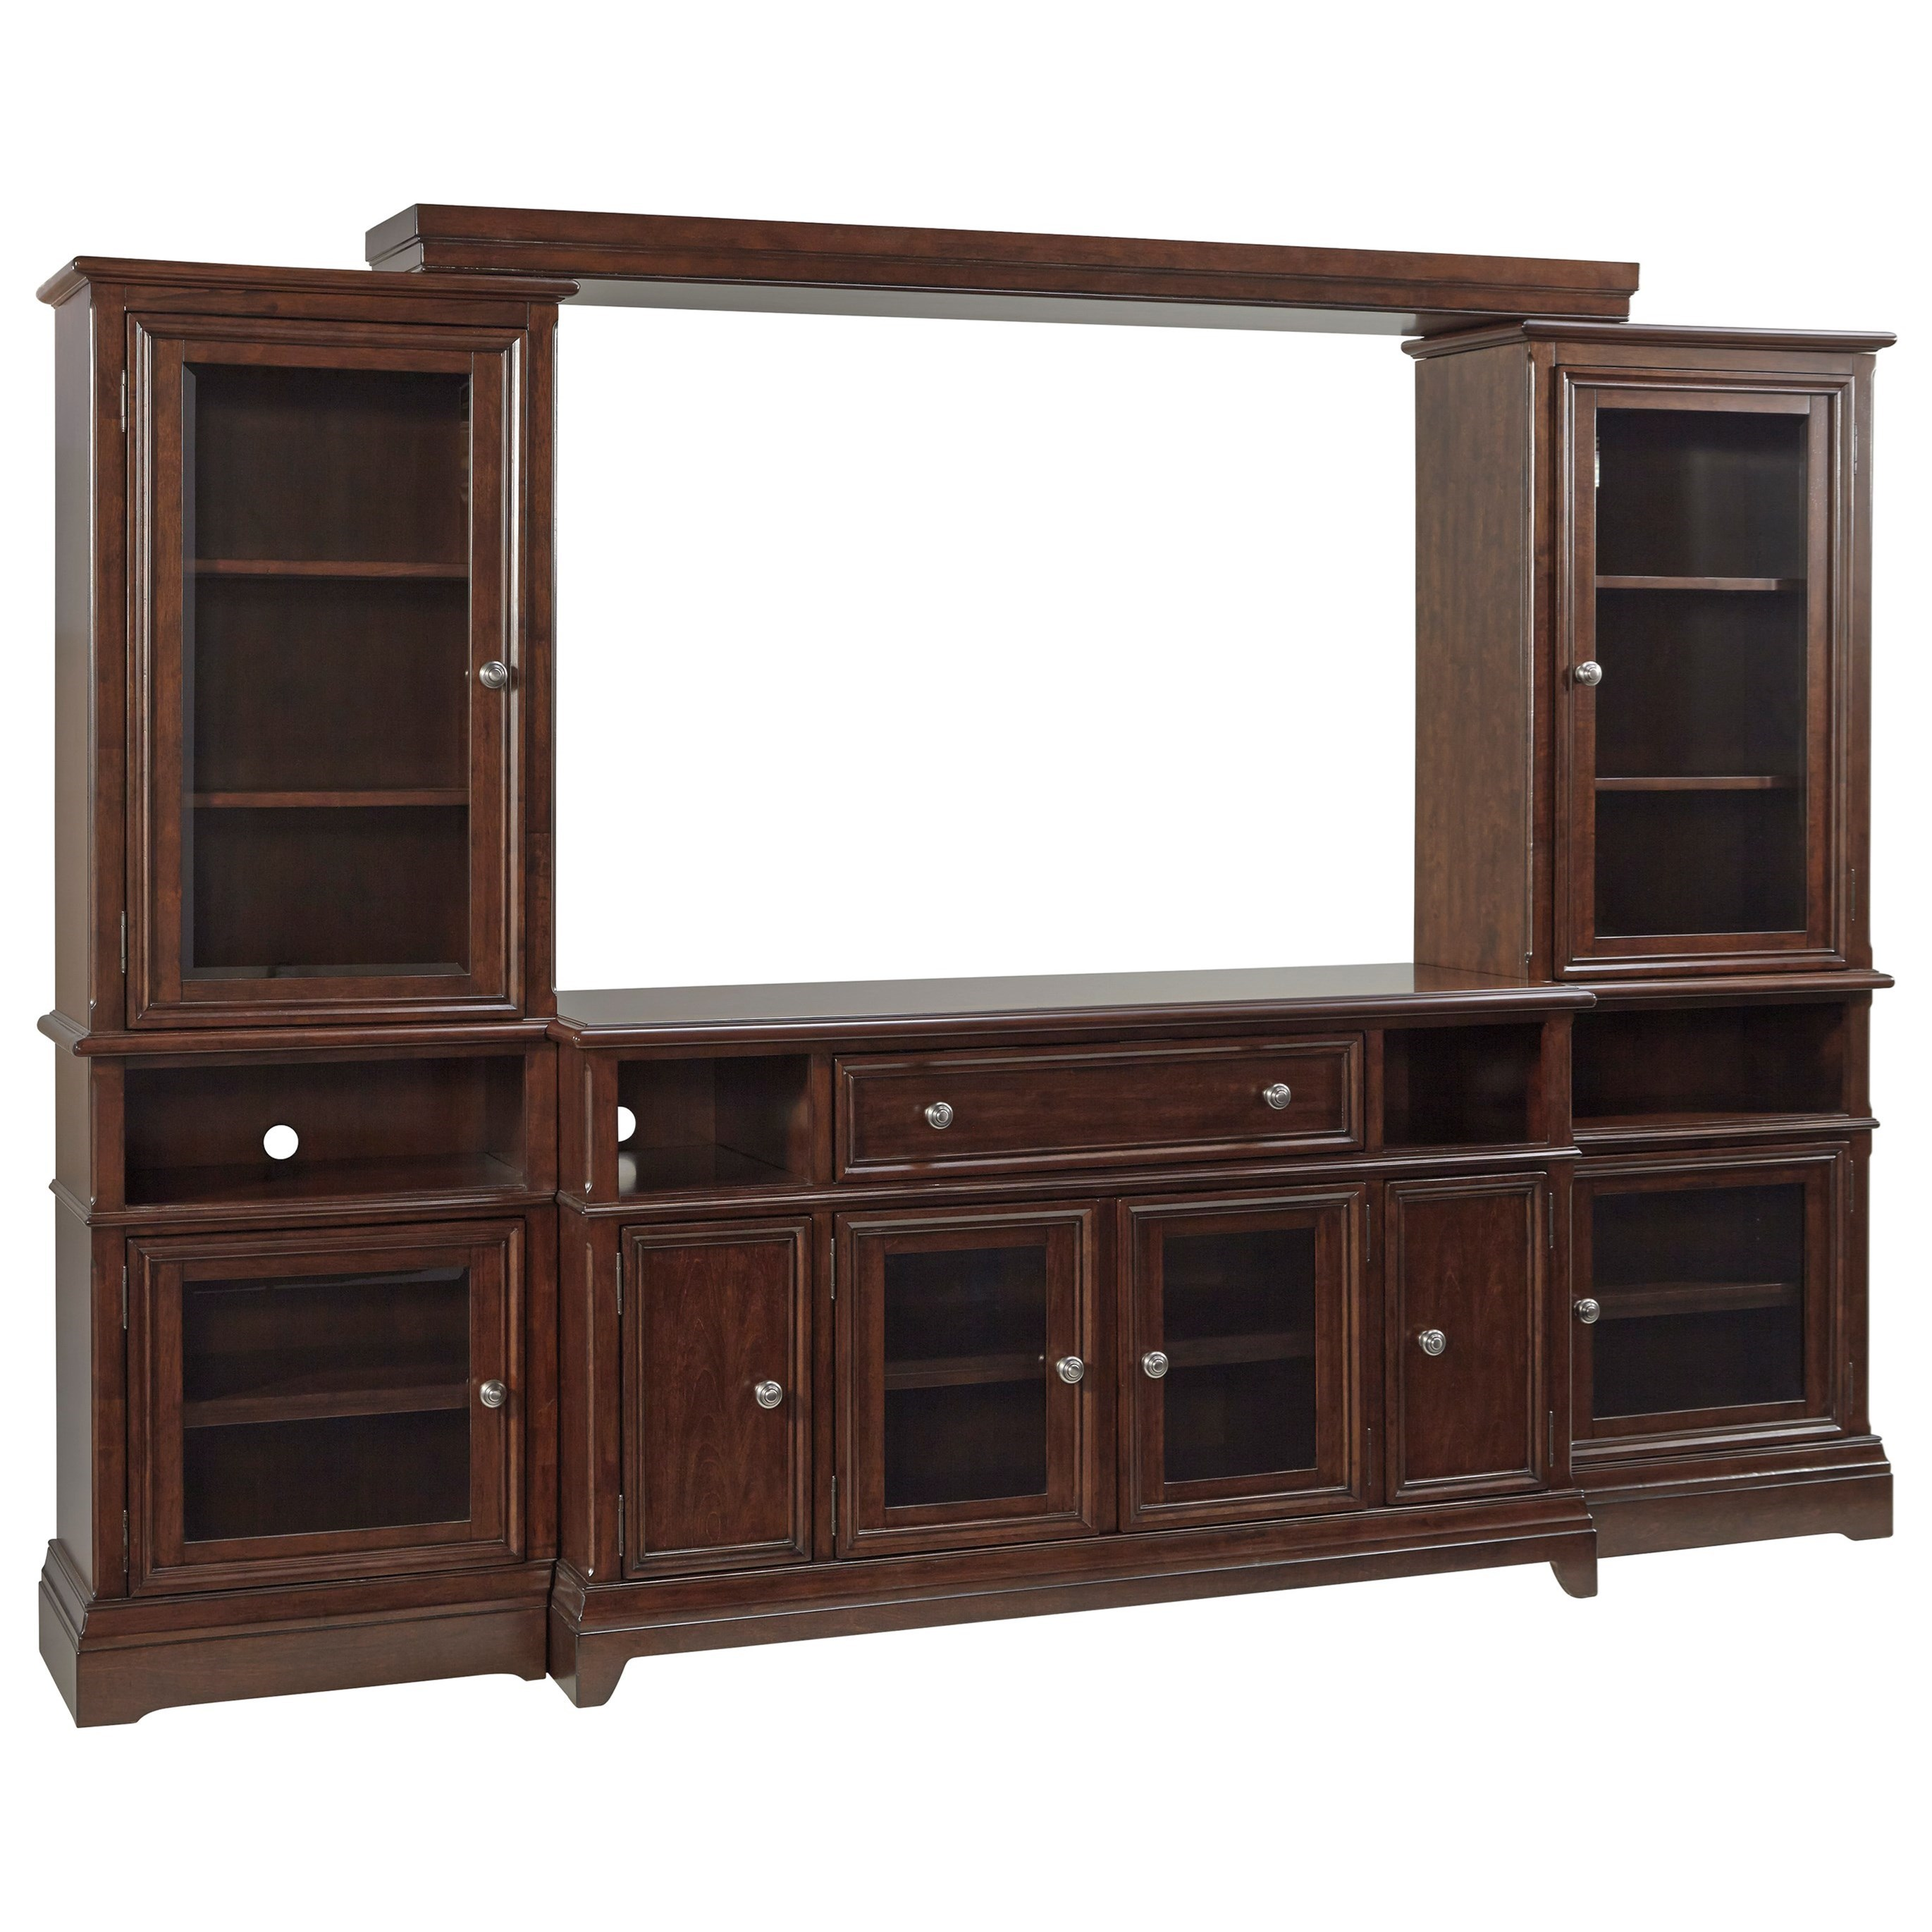 Signature Design by Ashley Lavidor Entertainment Wall Unit - Item Number: W809-23+22+25+24